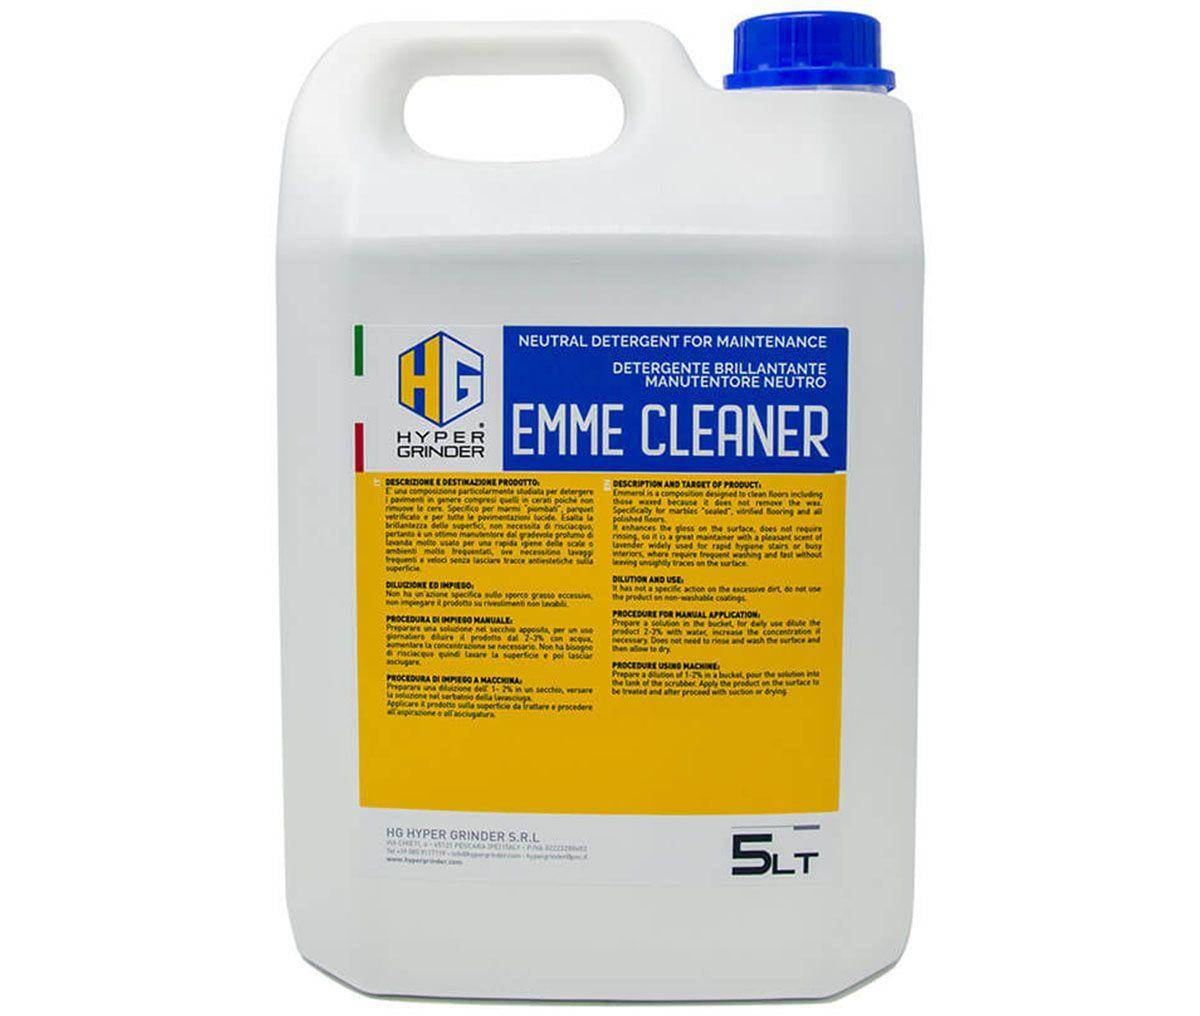 emme cleaner 1435